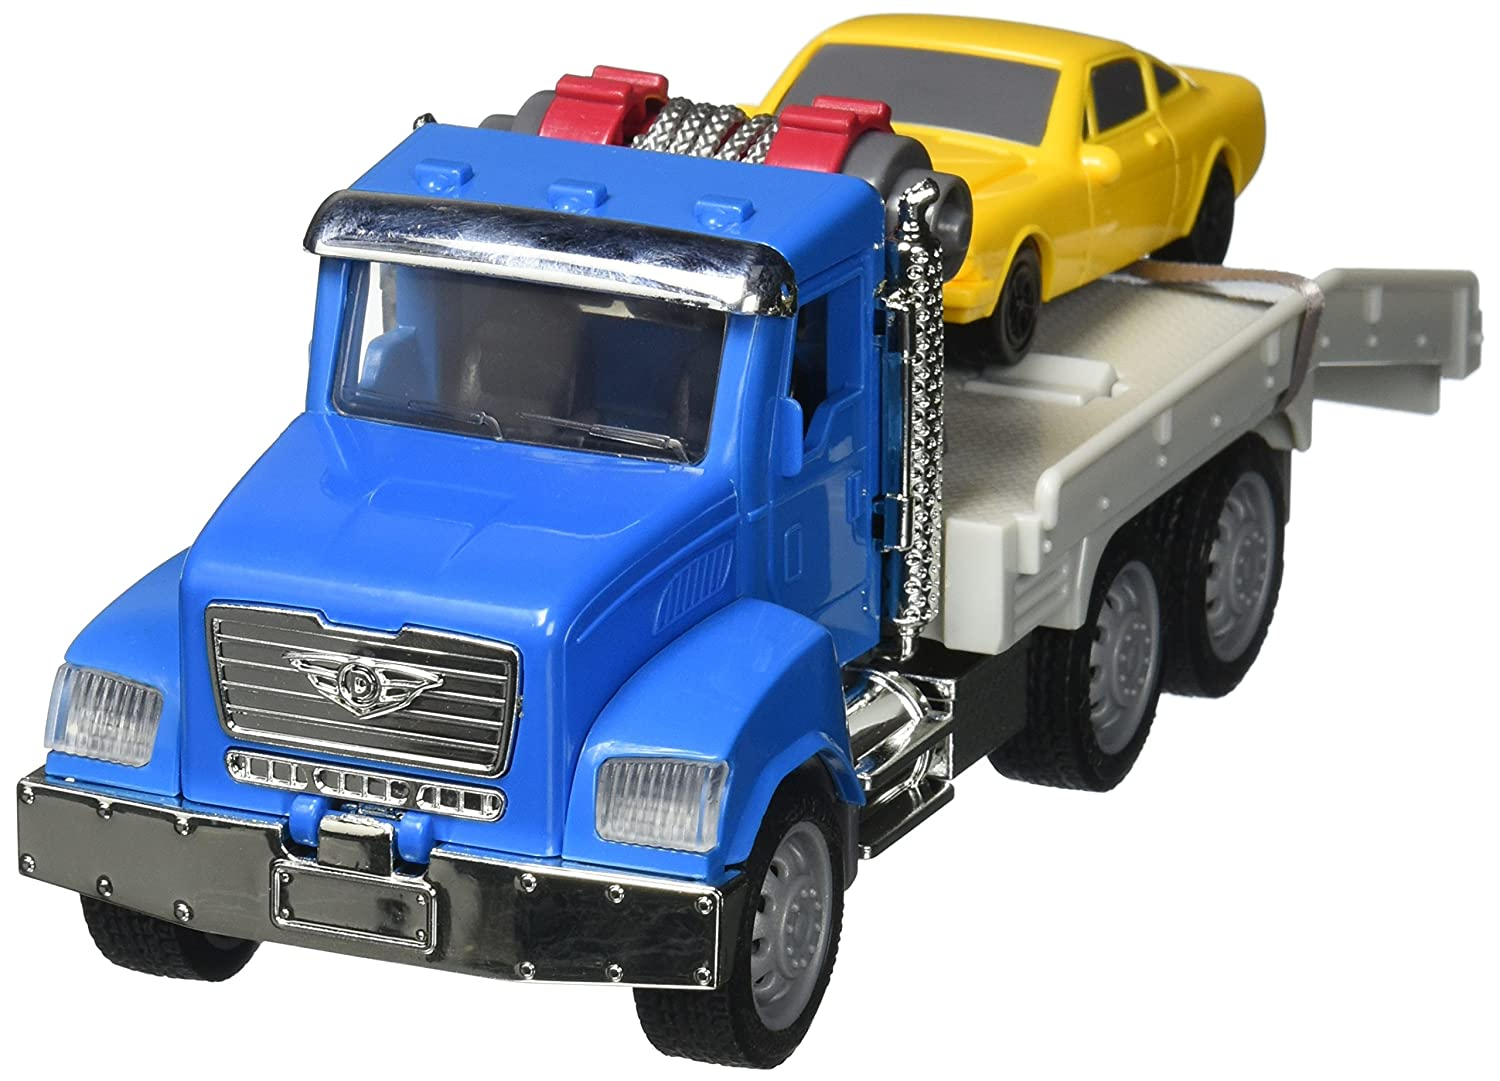 Amazon.com: Driven Mini Tow Truck Vehicle: Toys & Games